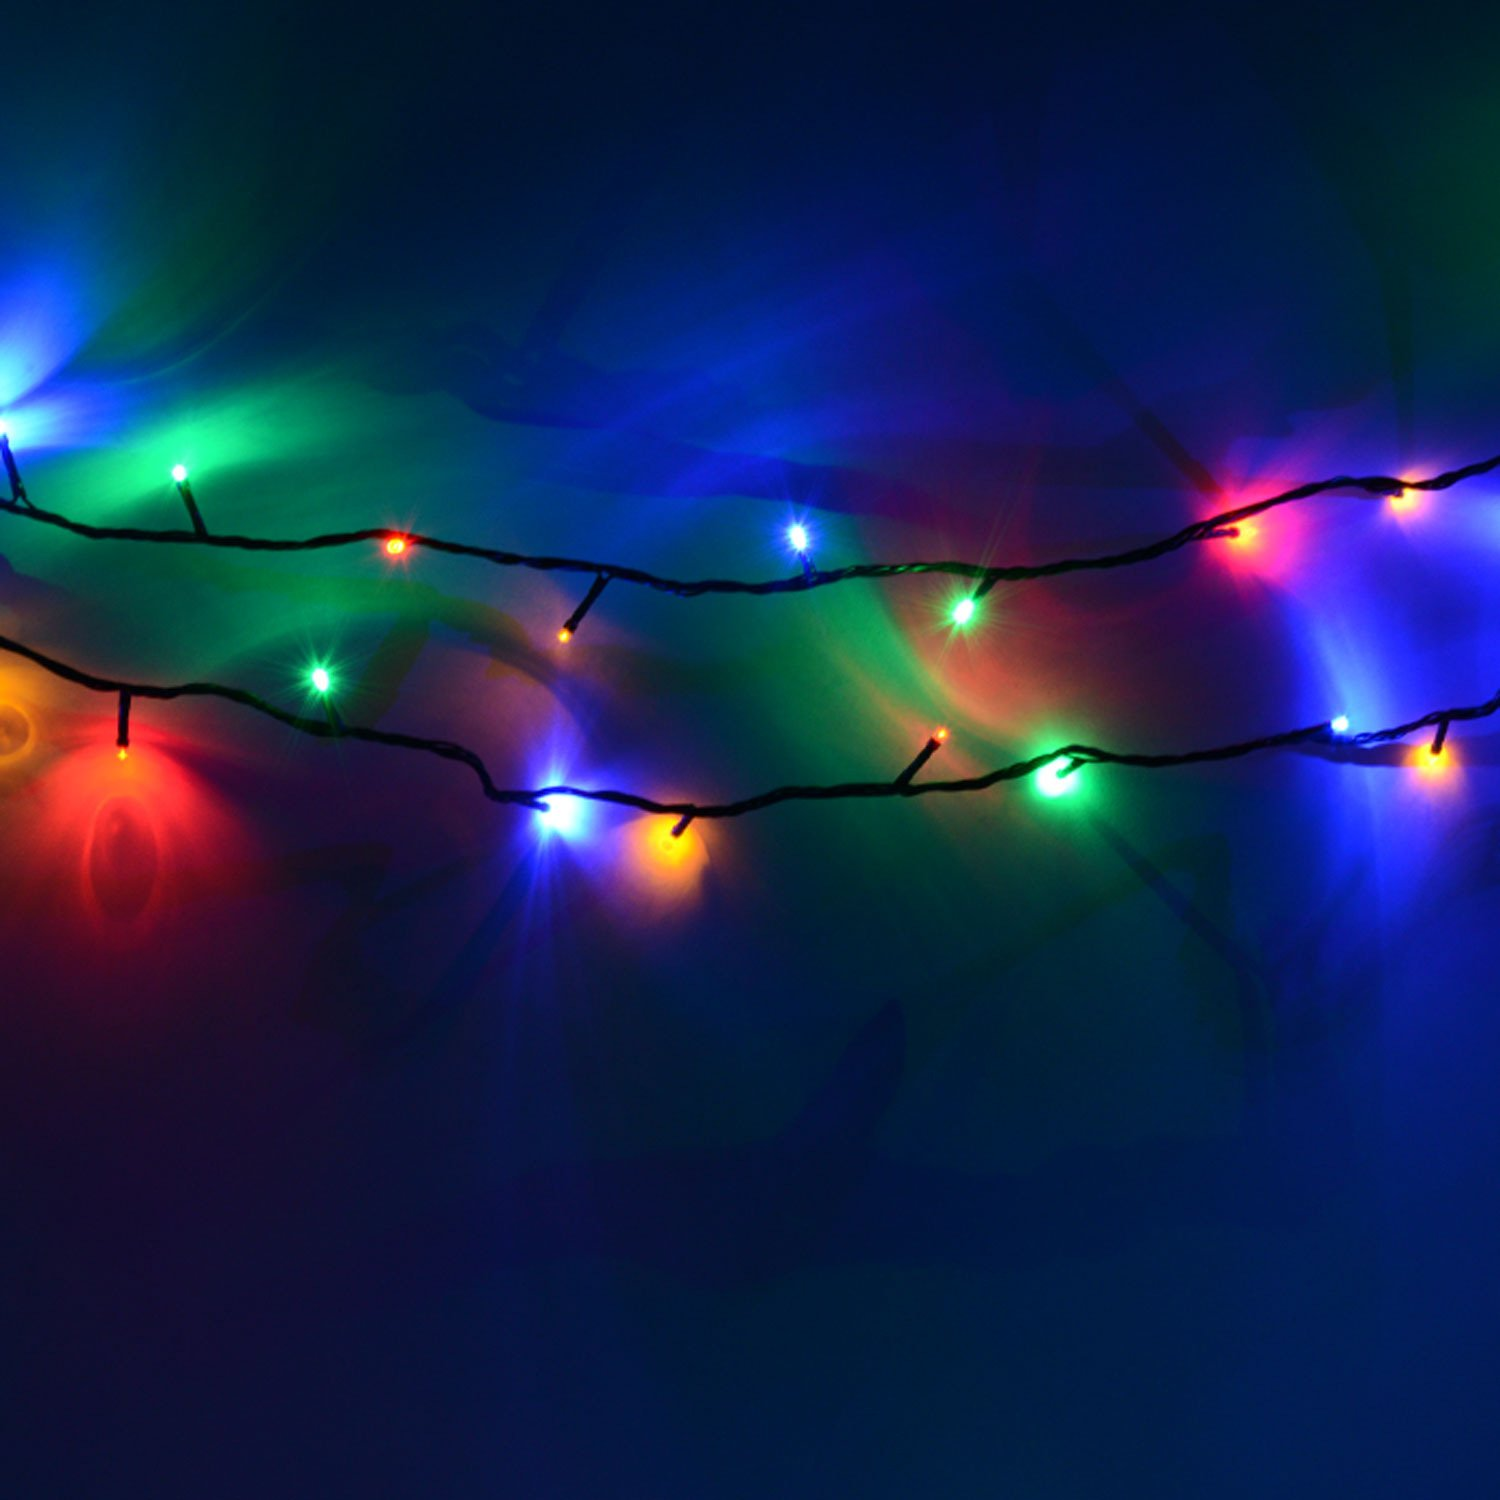 Premier Christmas Supabright Light Decorations Indoor And Outdoor Ac Wiring Diagram Led Lights 480 Leds Multi Coloured Garden Outdoors